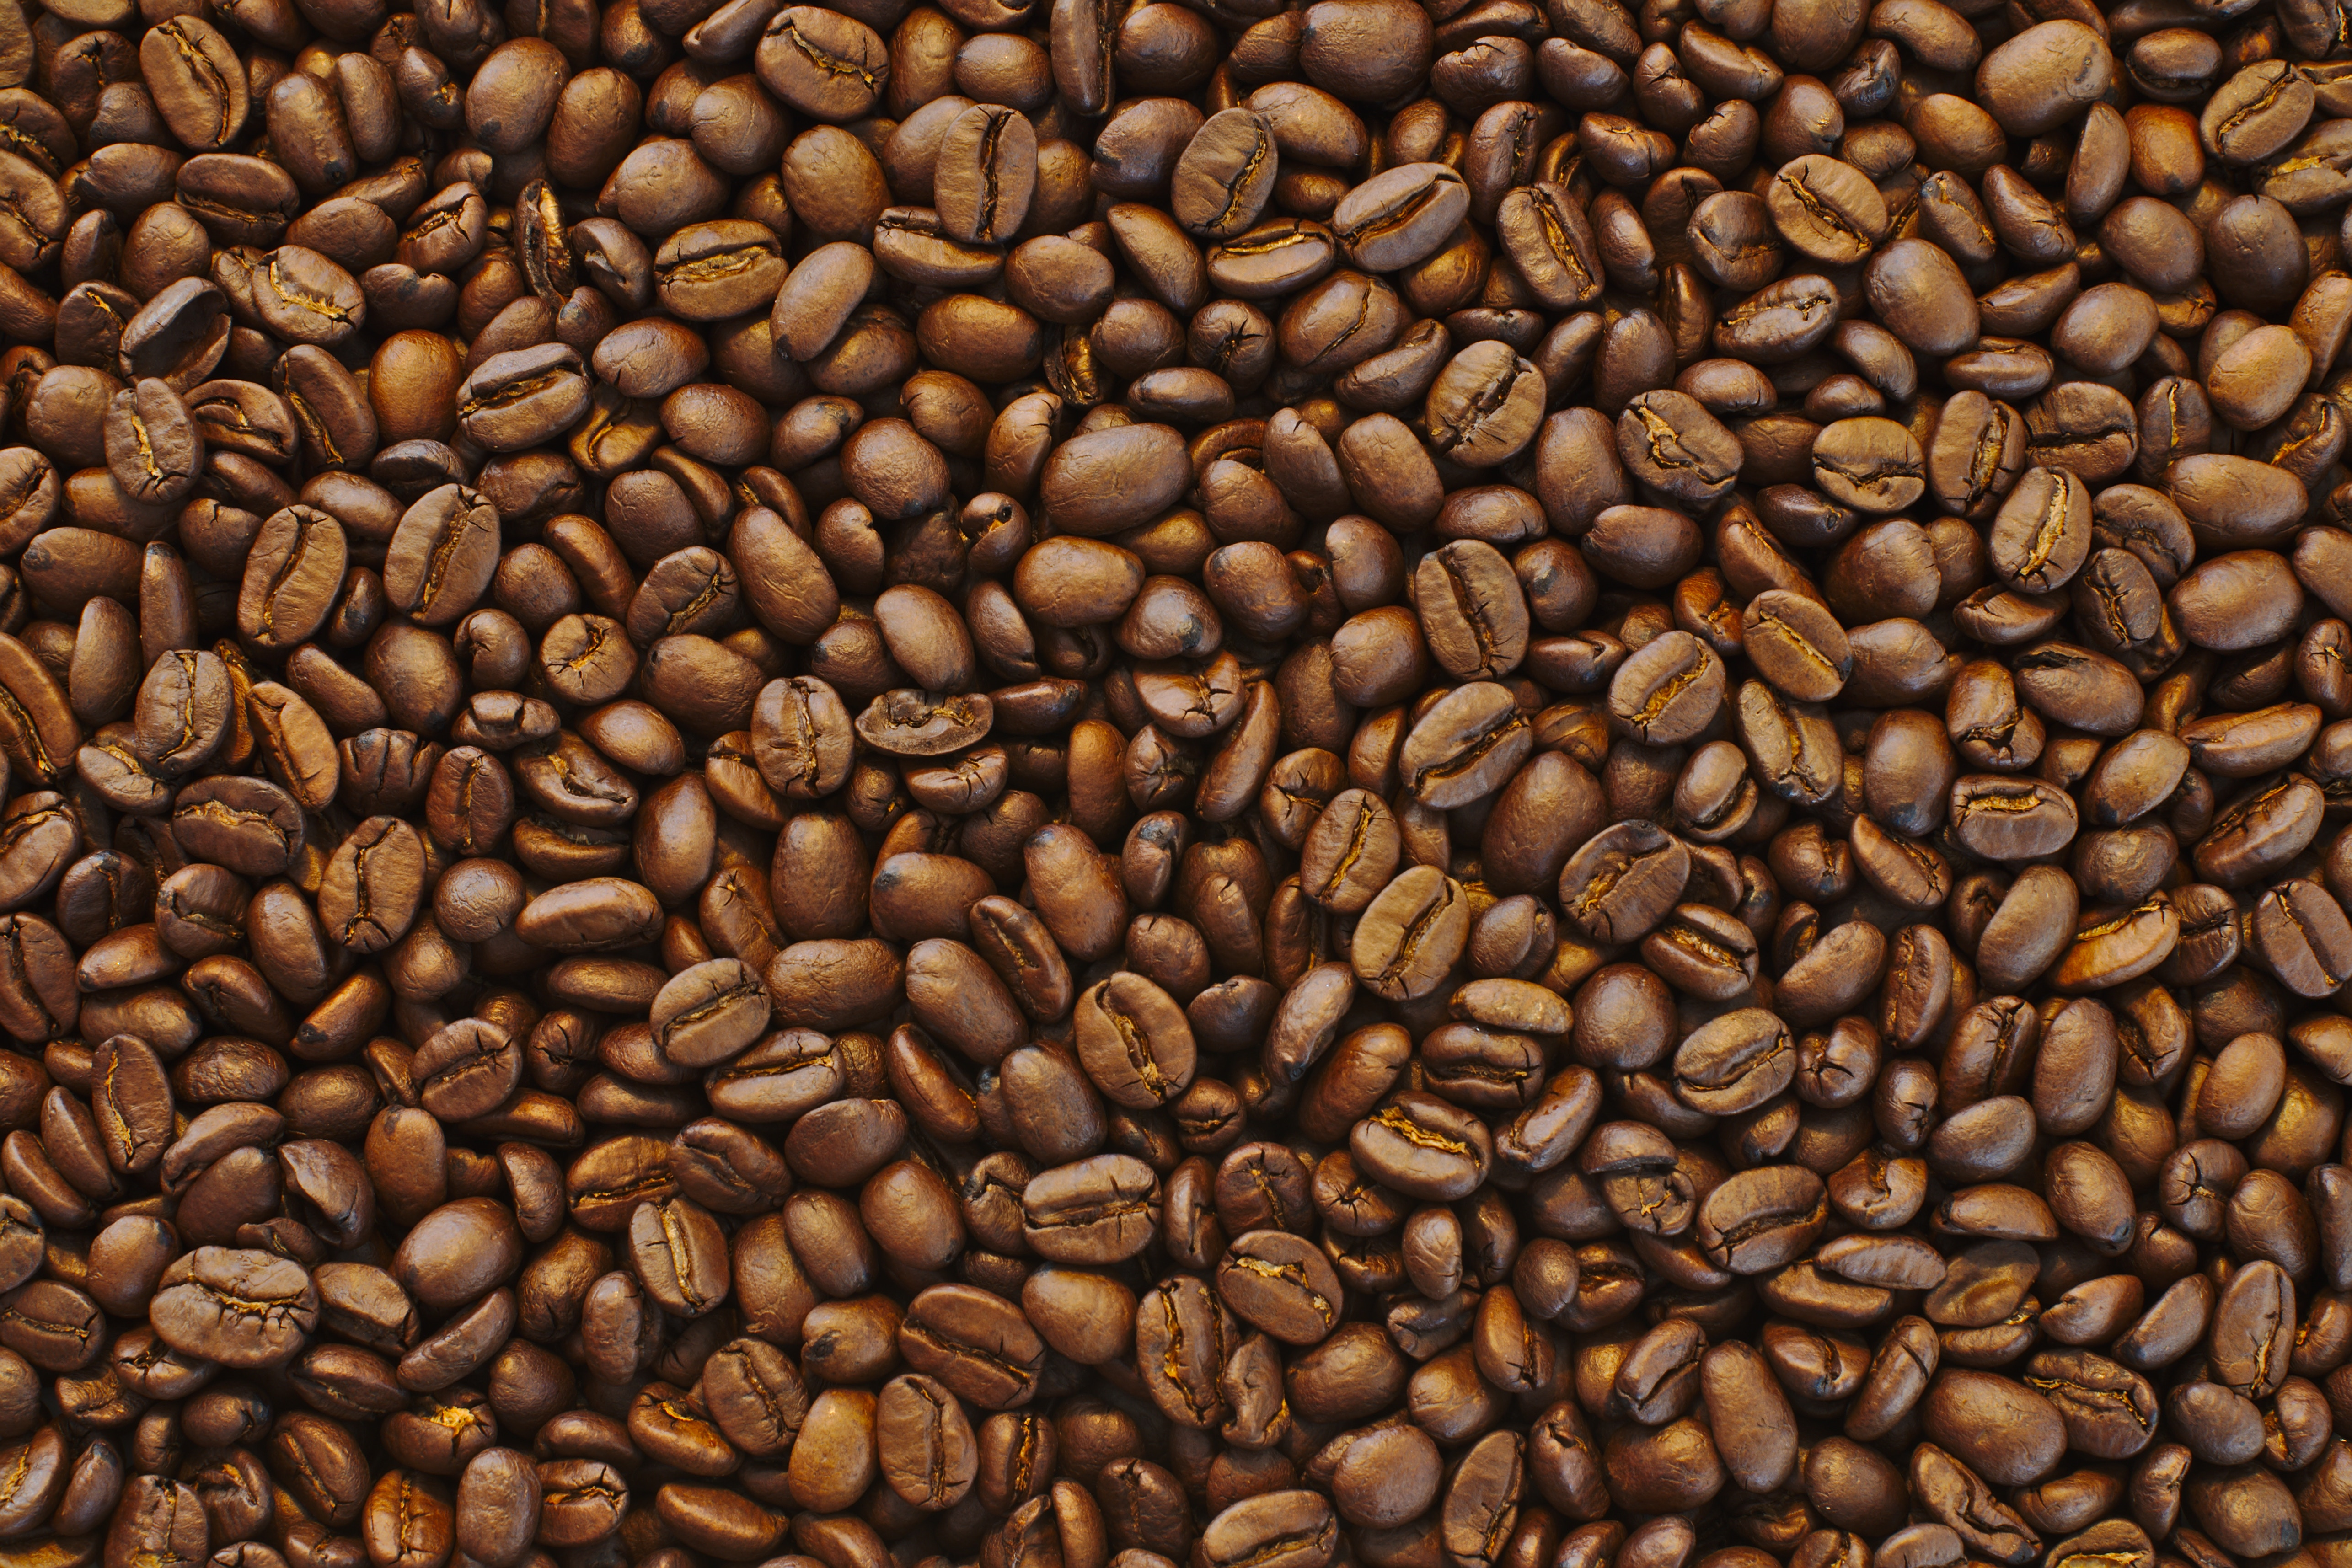 64915 download wallpaper Food, Coffee, Coffee Beans, Fried, Grains, Grain screensavers and pictures for free